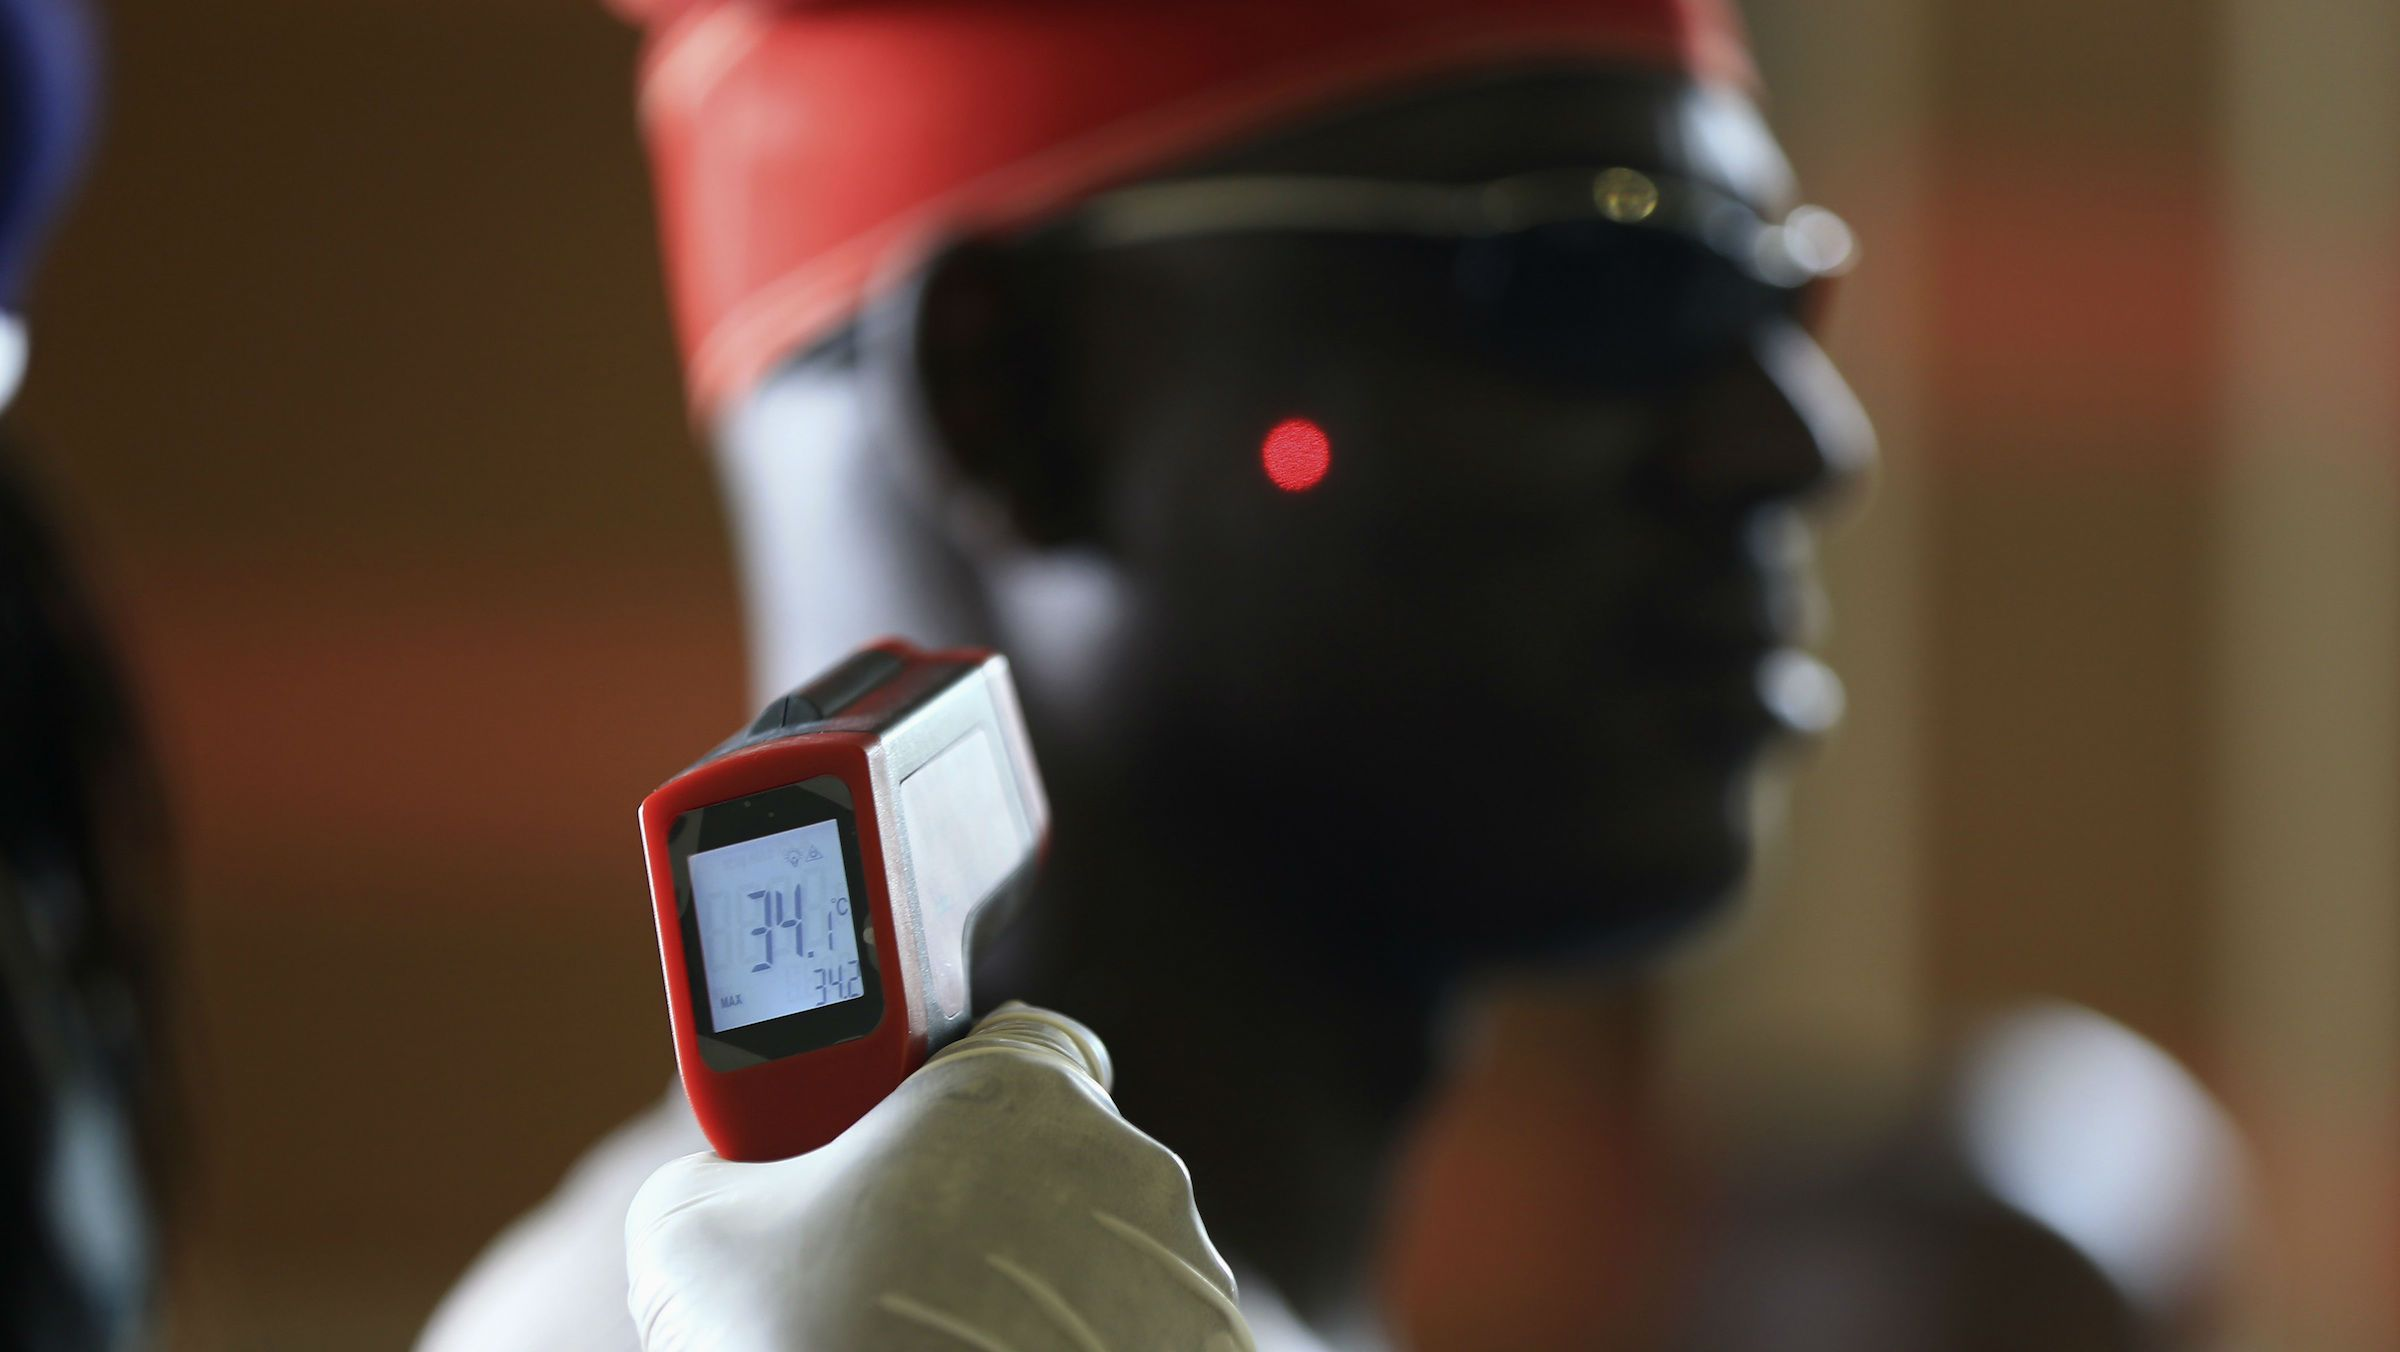 A man has his temperature taken using an infrared digital laser thermometer at the Nnamdi Azikiwe International Airport in Abuja, Nigeria.